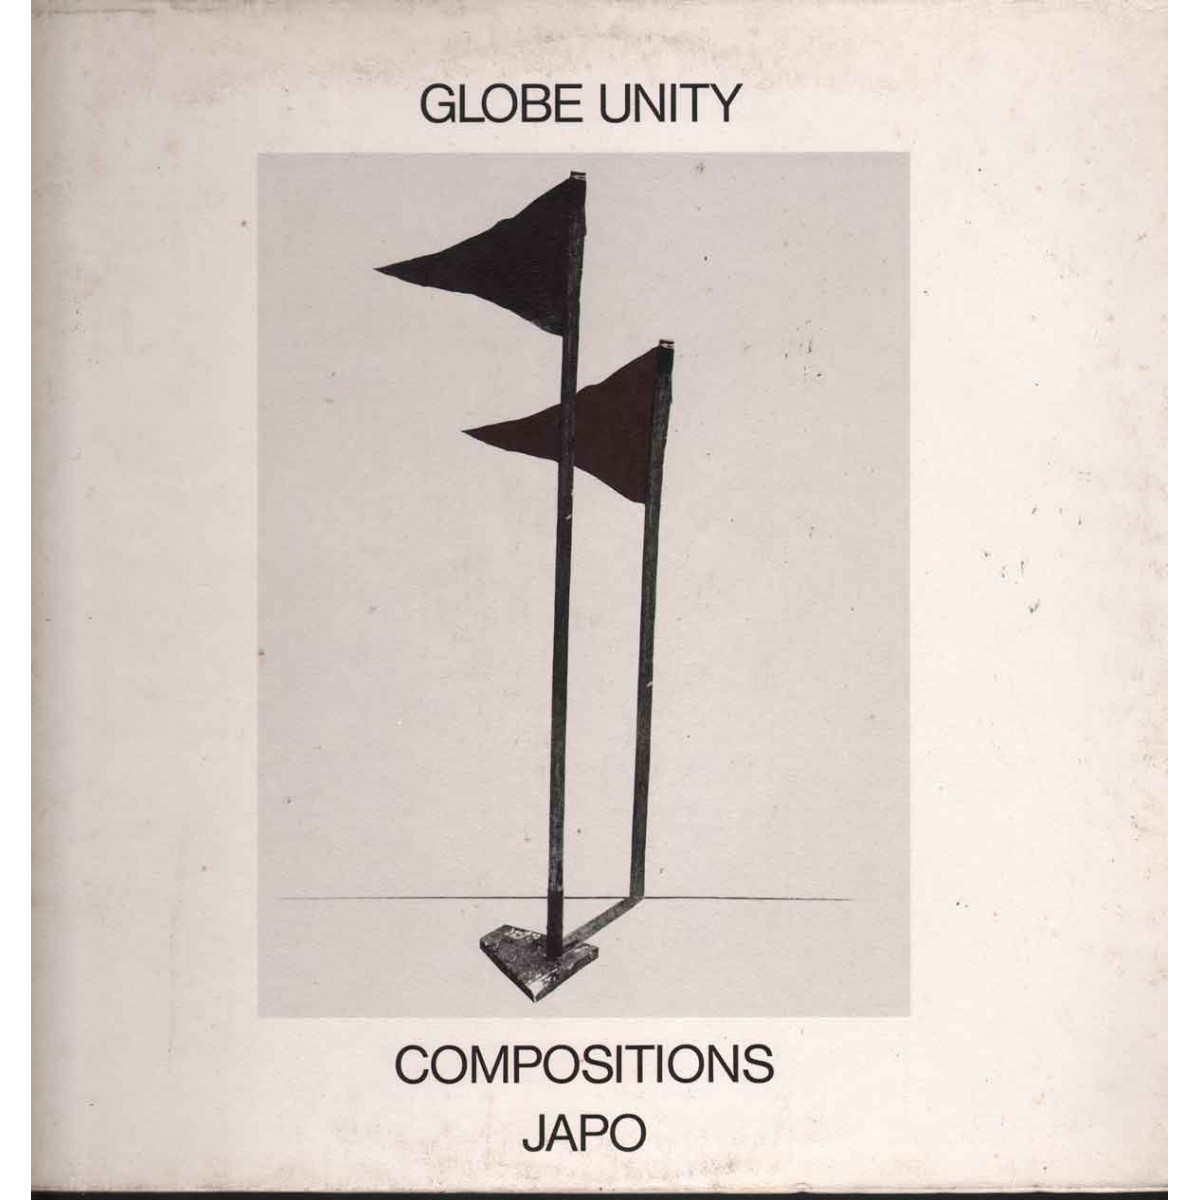 Globe Unity Lp 33giri Compositions Nuovo Japo Records ‎– JAPO 60027